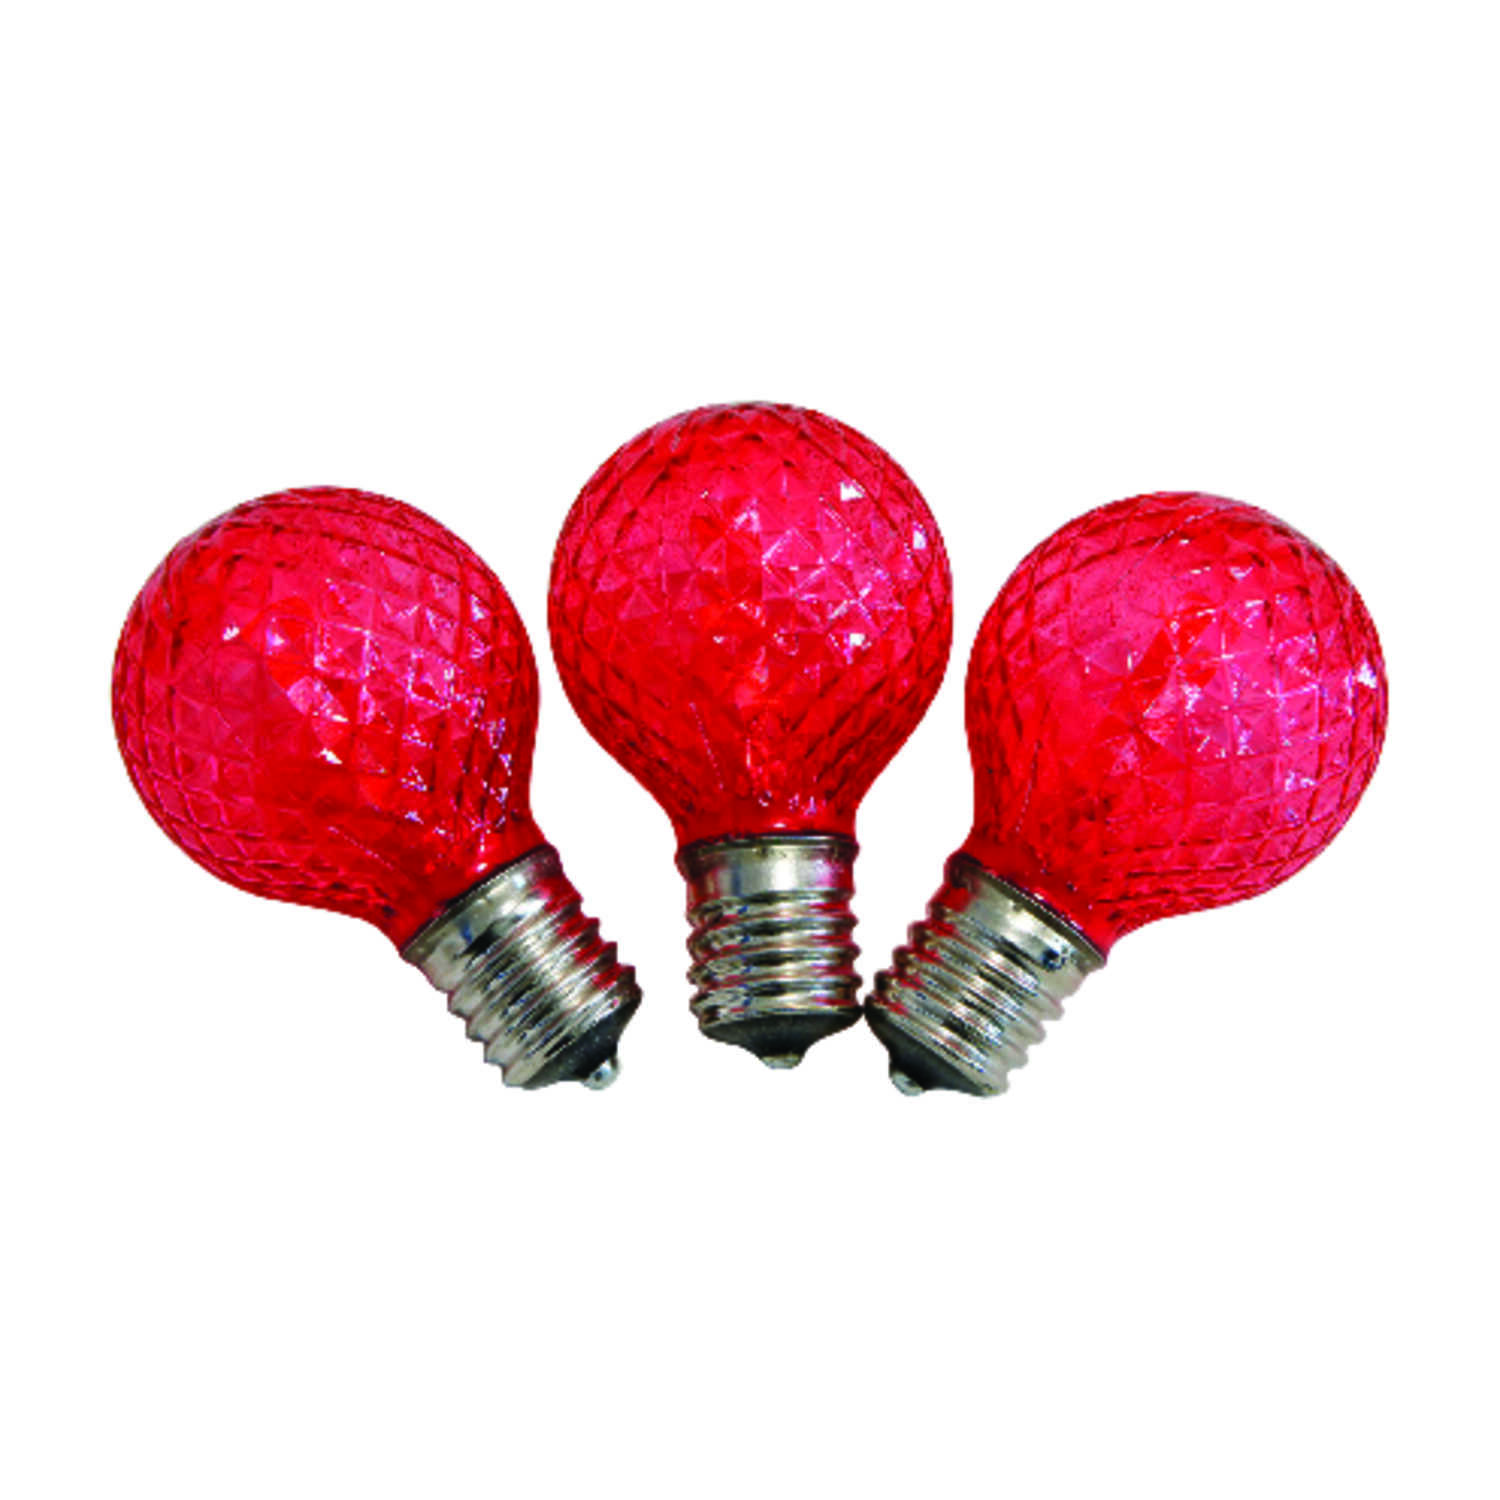 Celebrations  LED  G40  Replacement Bulb  Red  25 pk